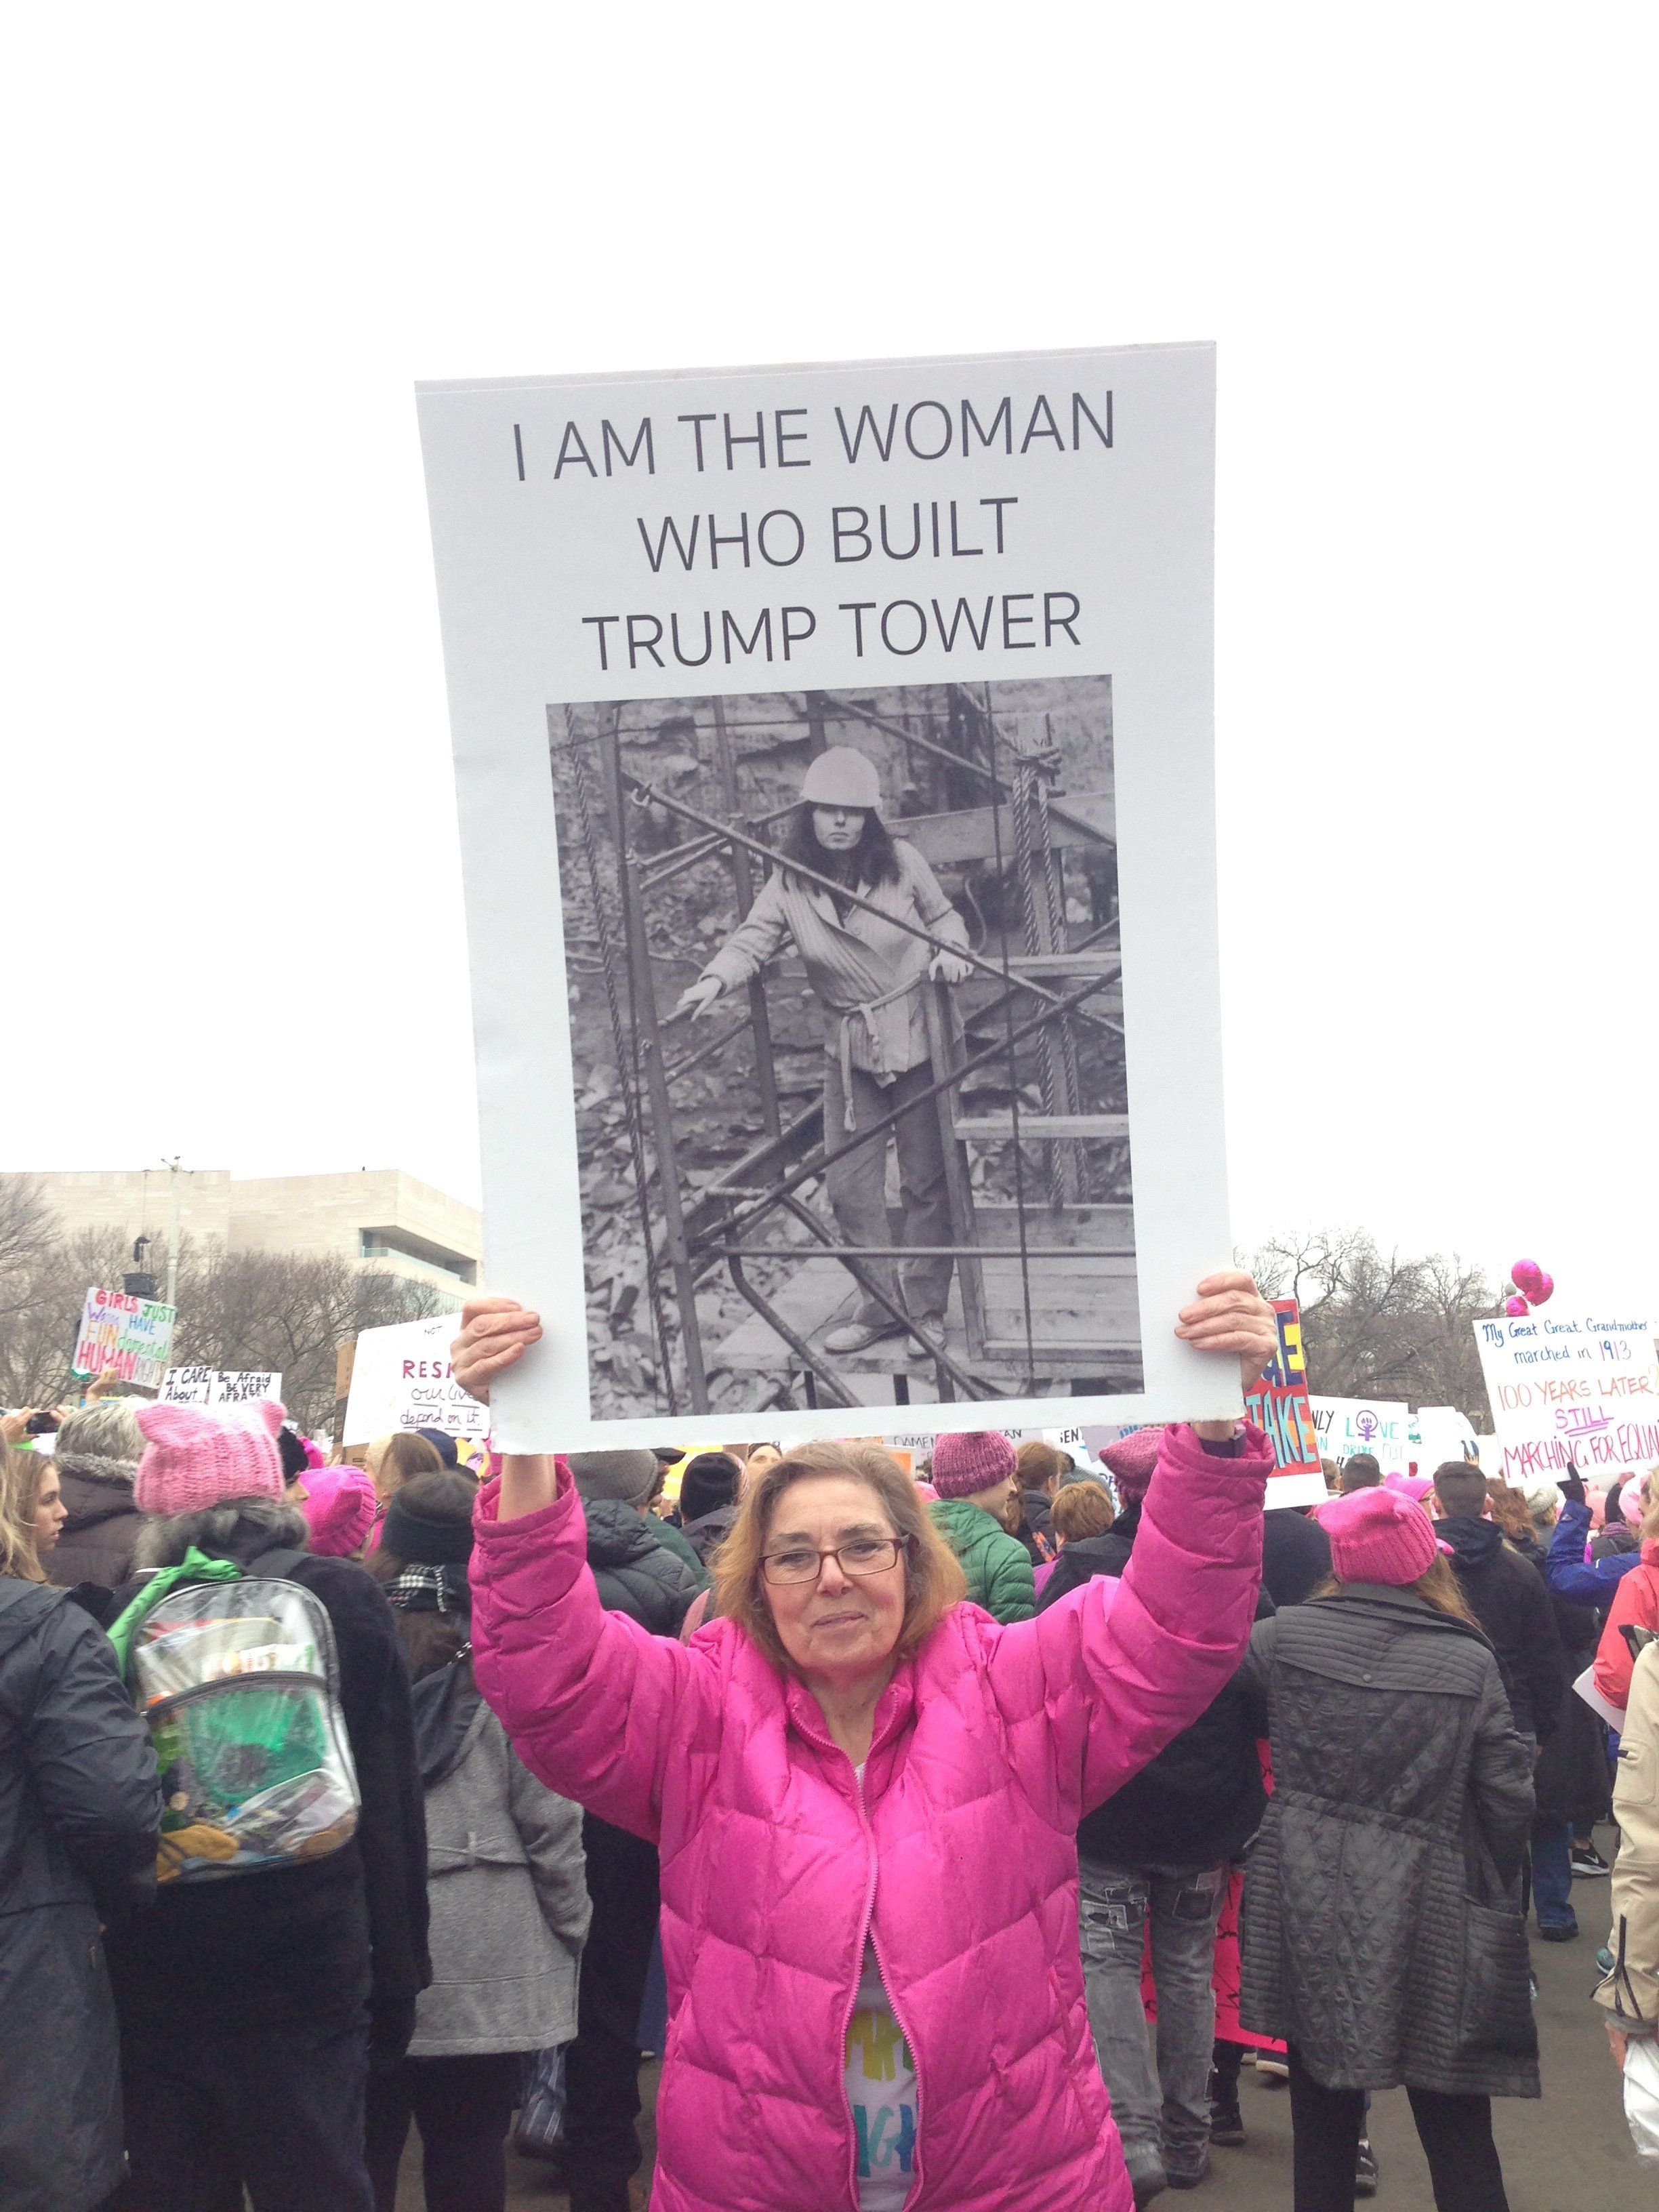 Barbara A. Res worked in construction on the Trump Tower from 1980-1984.